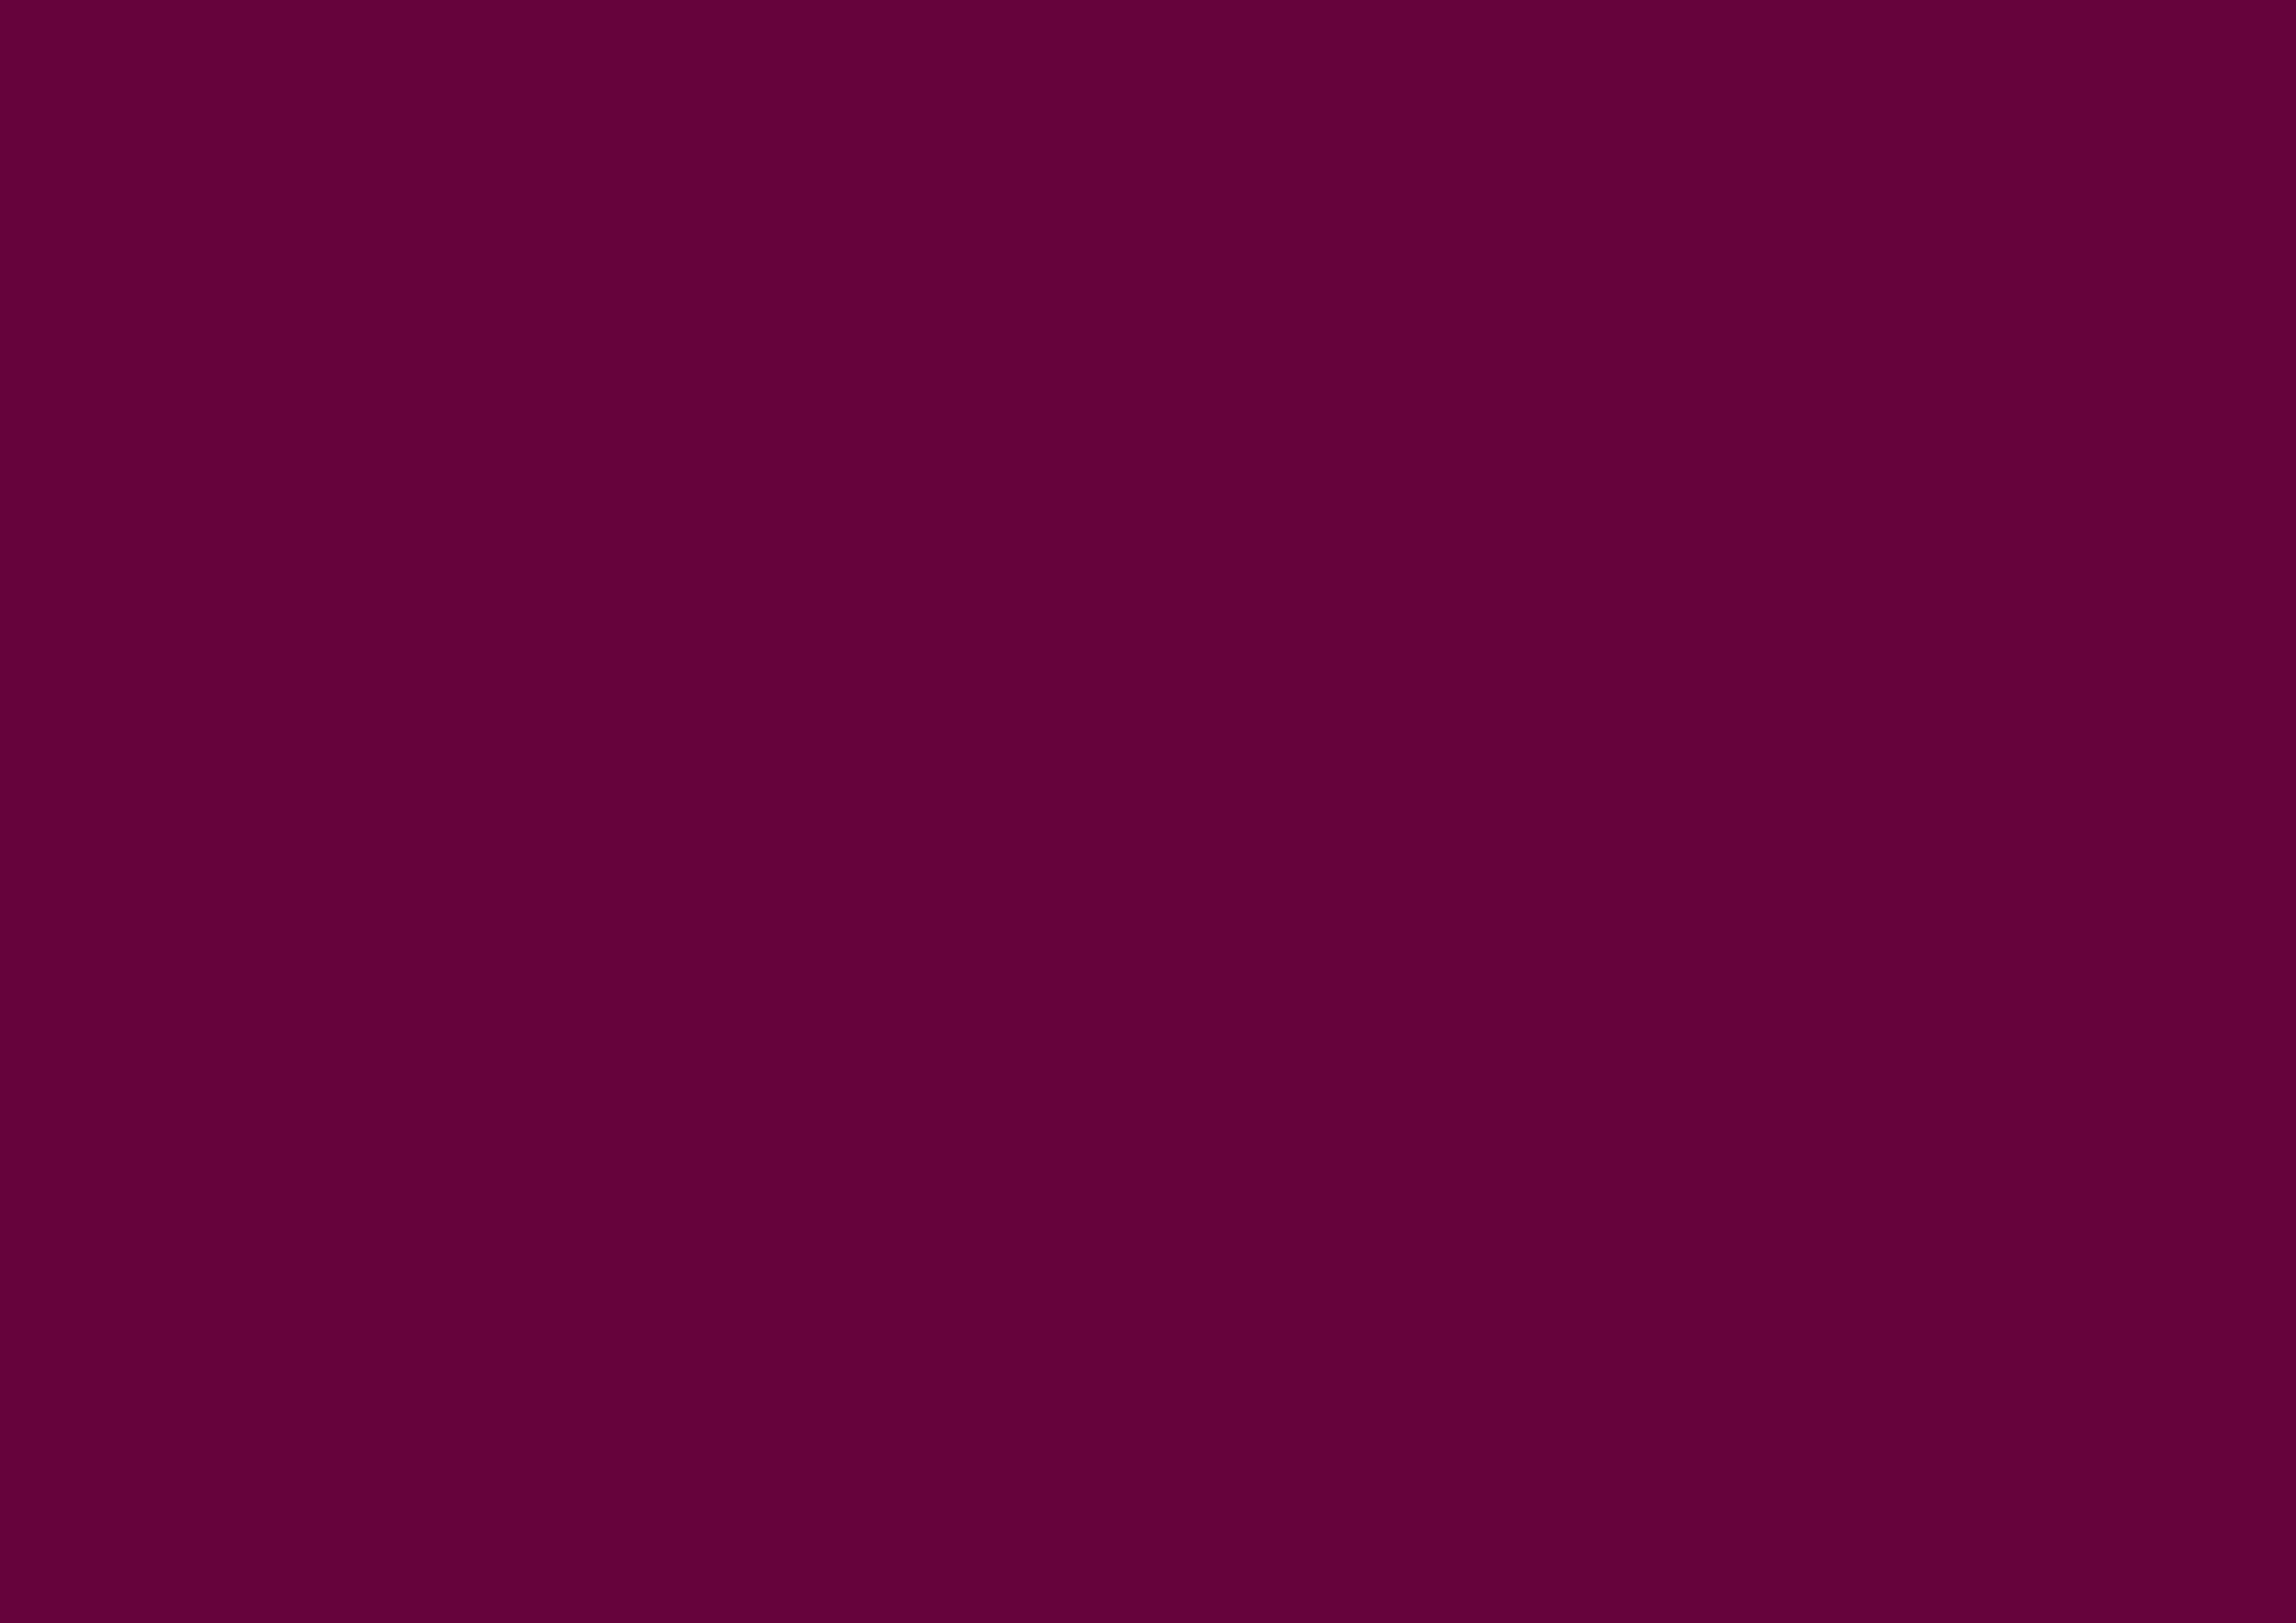 3508x2480 Tyrian Purple Solid Color Background